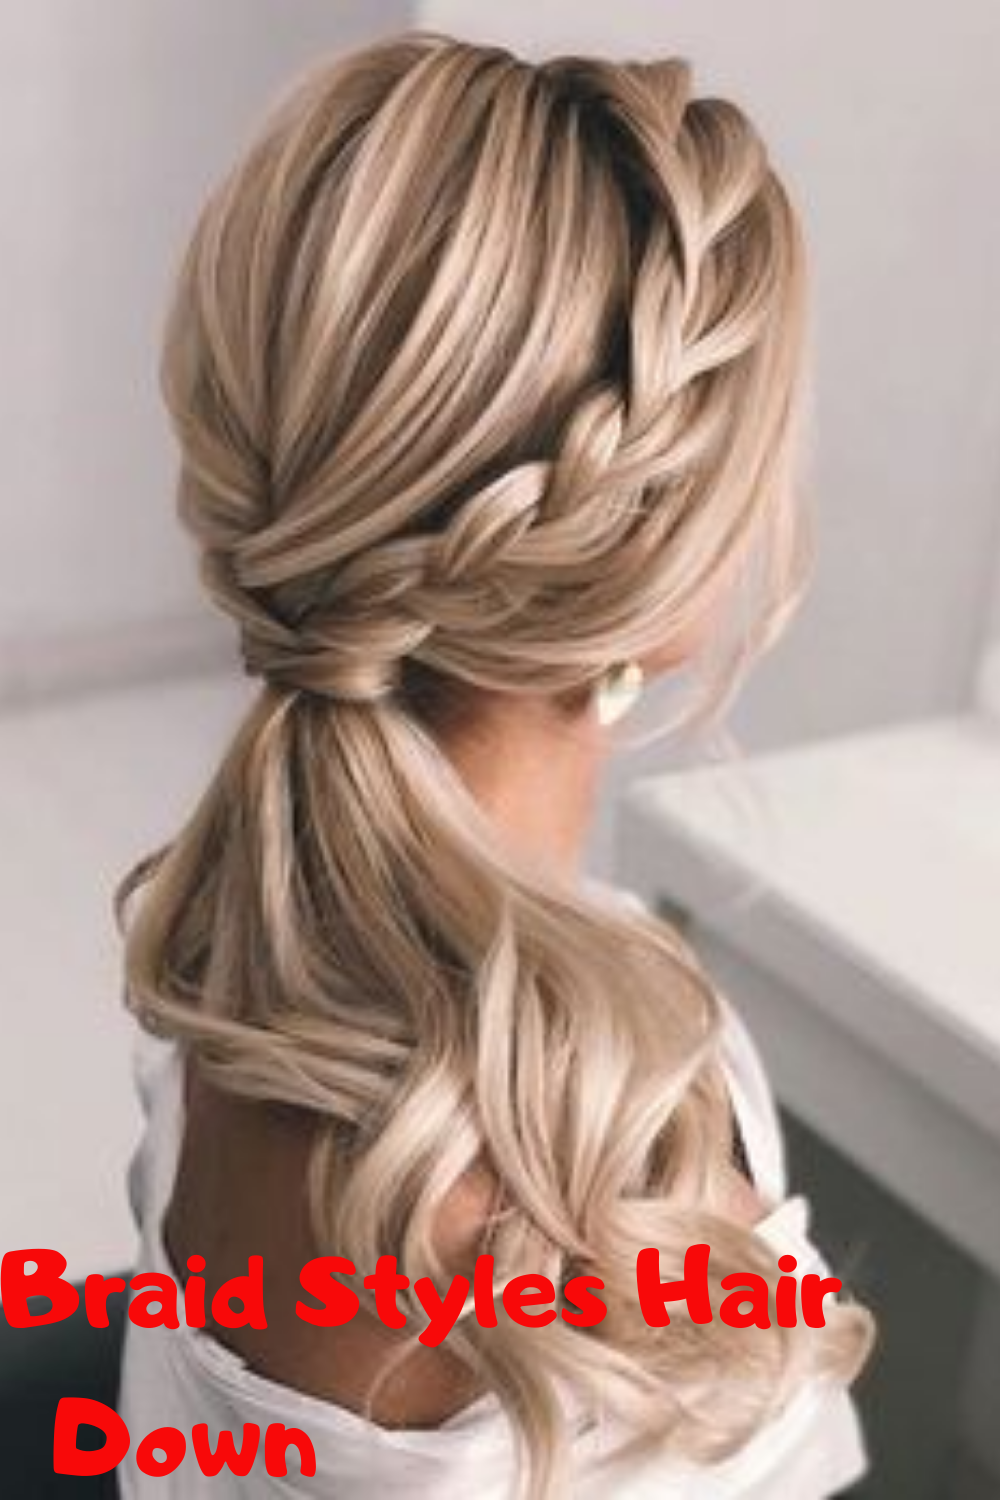 Braid Styles Hair Down In 2020 Tail Hairstyle Hair Styles Wedding Ponytail Hairstyles